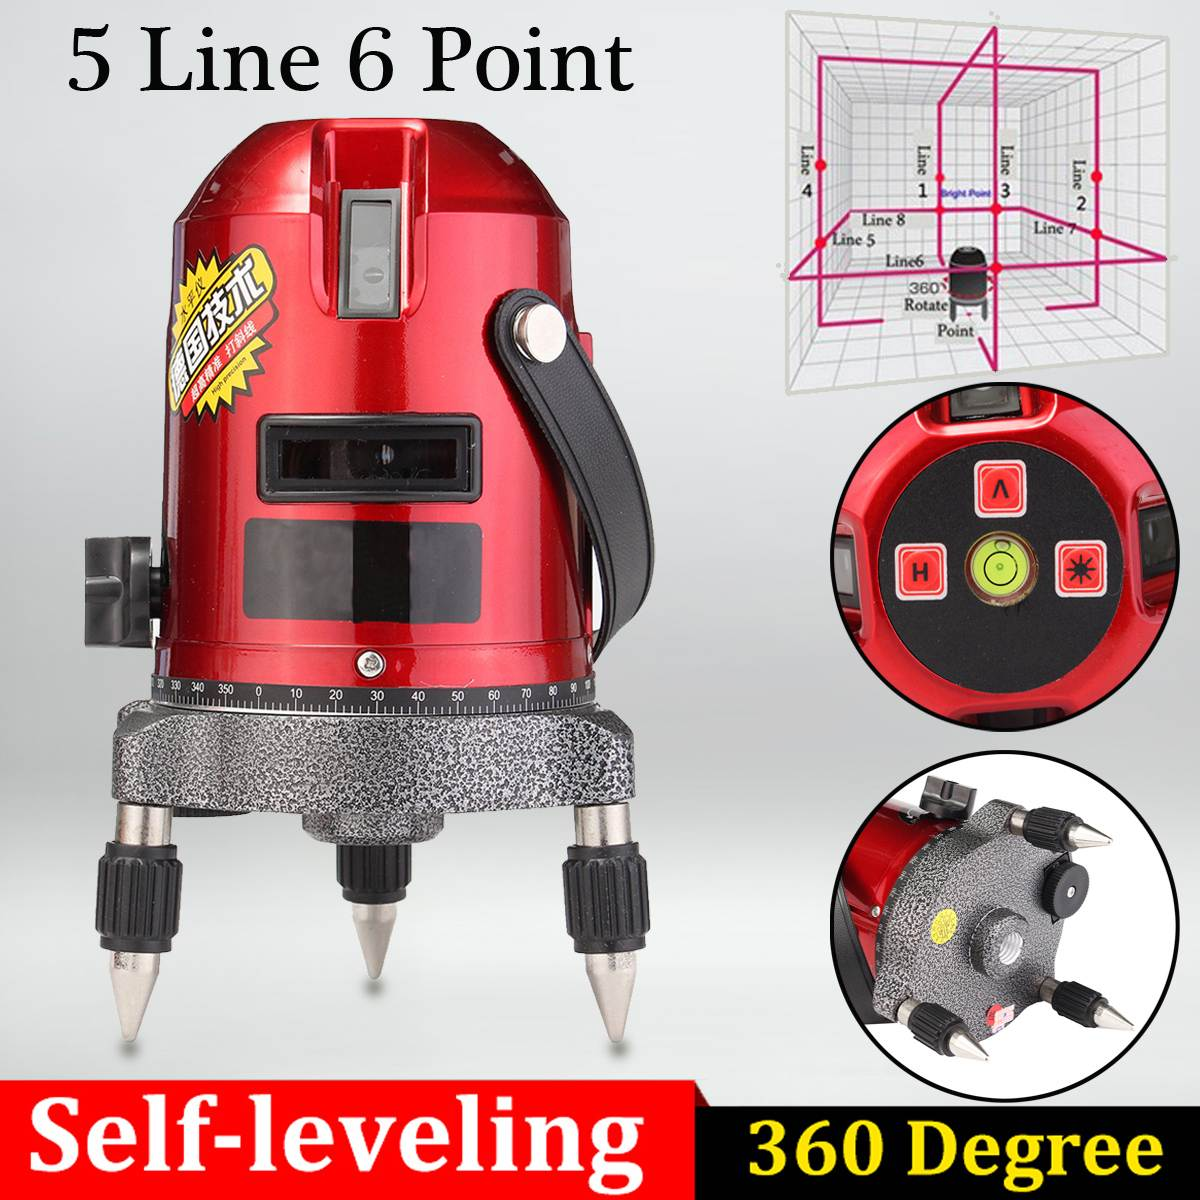 5 Line 6 Point 4V1H Cross Line Red Shockproof Automatic Self Leveling Laser Level Measure Meter Kit jocelyn rose k c annual plant reviews the plant cell wall isbn 9781405147736